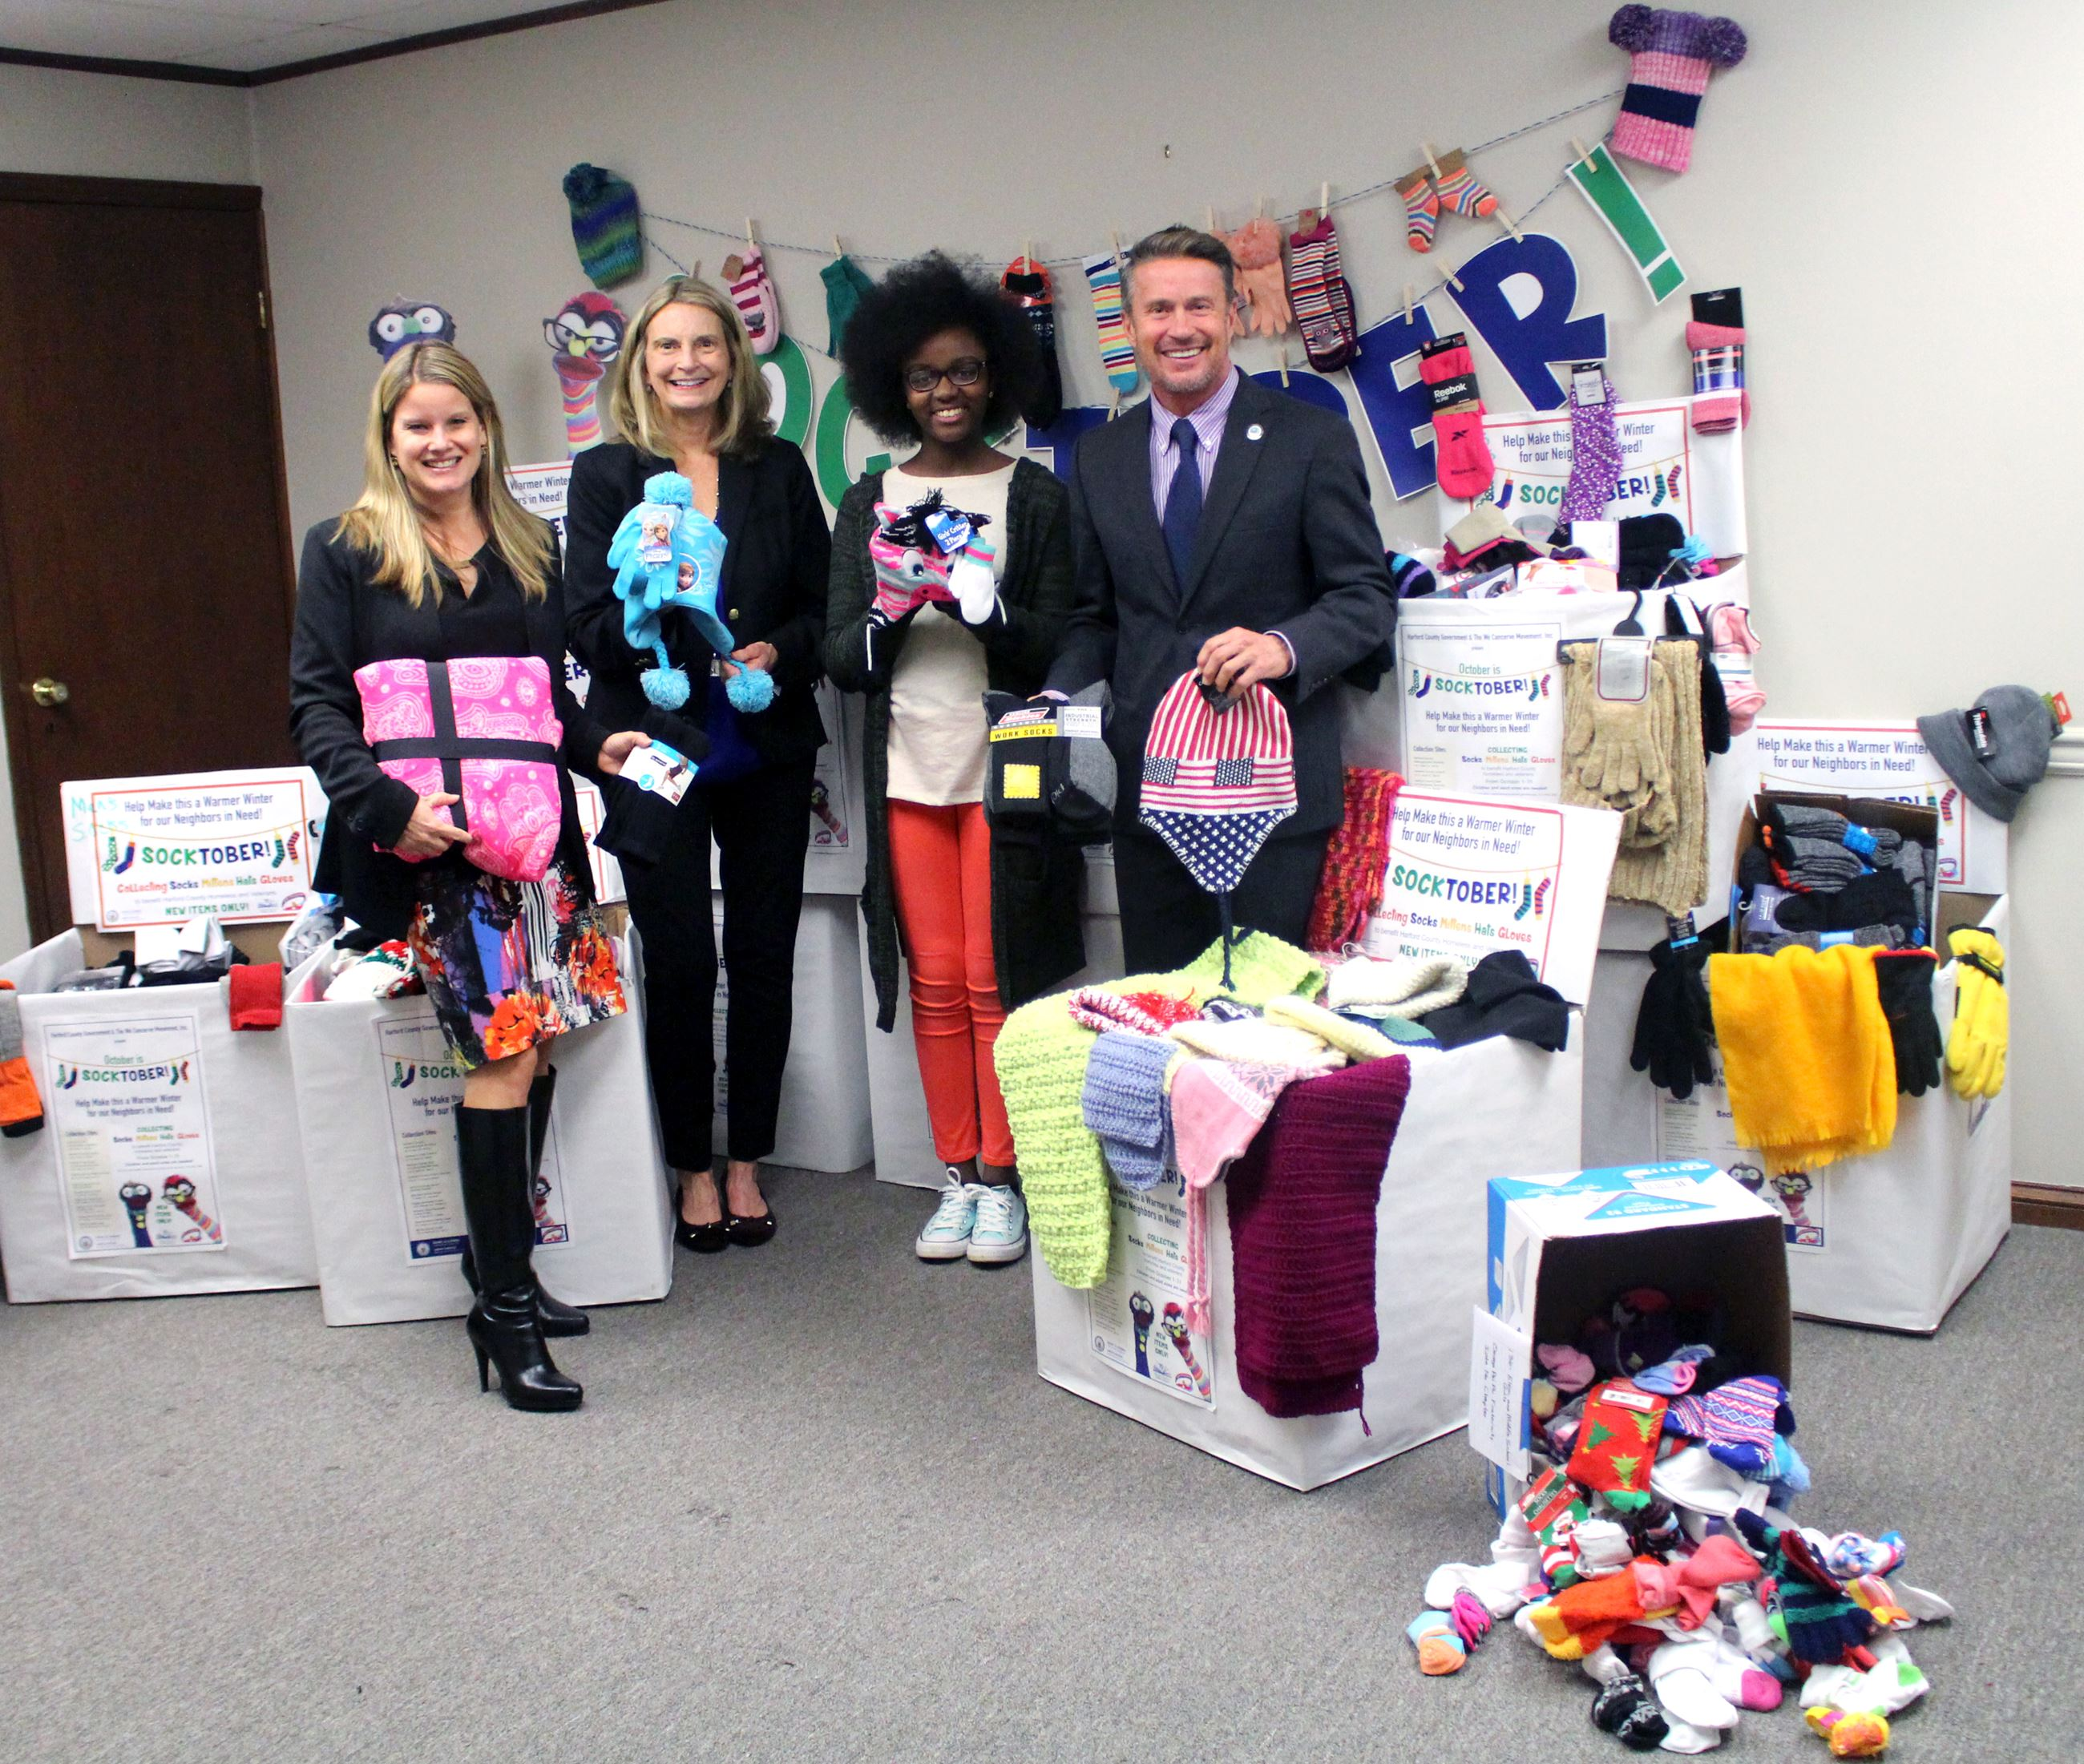 Socktober Donations with Barry Glassman Mary Hastler Amber Shrodes and Grace Callwood